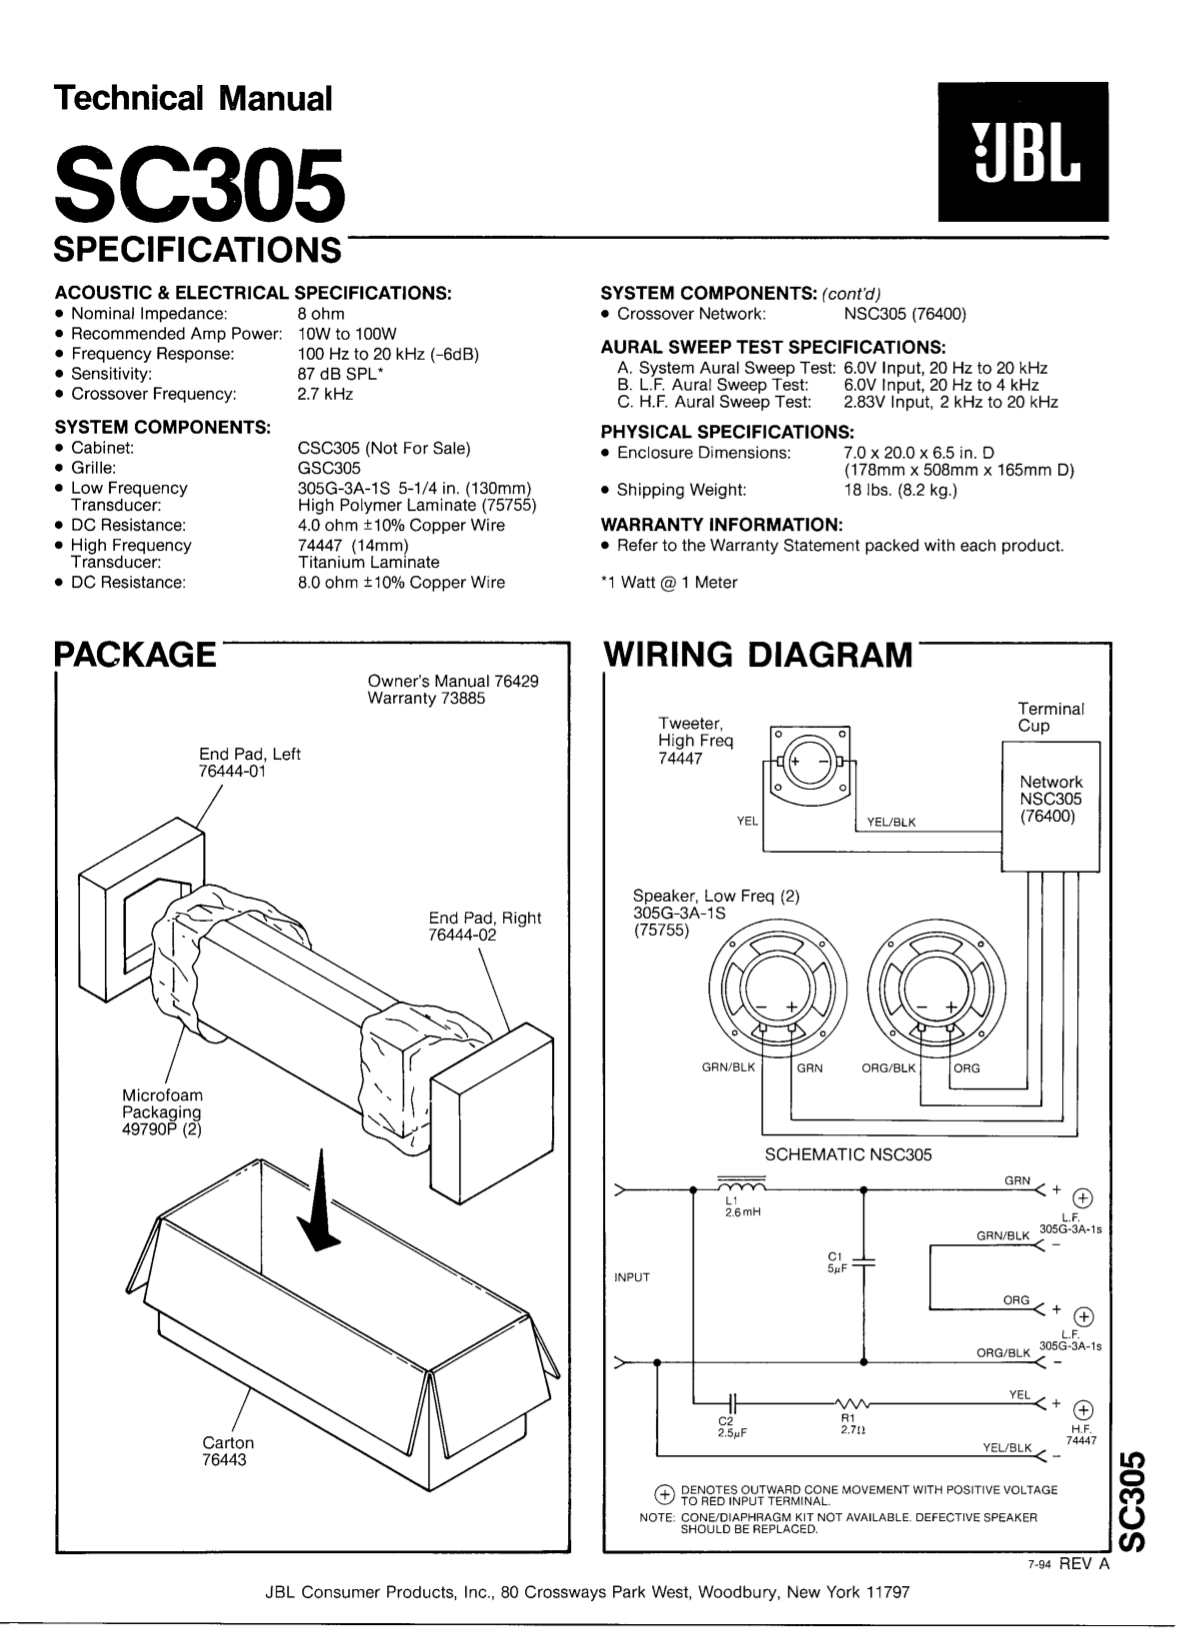 Download free pdf for JBL SC305 Speaker manual